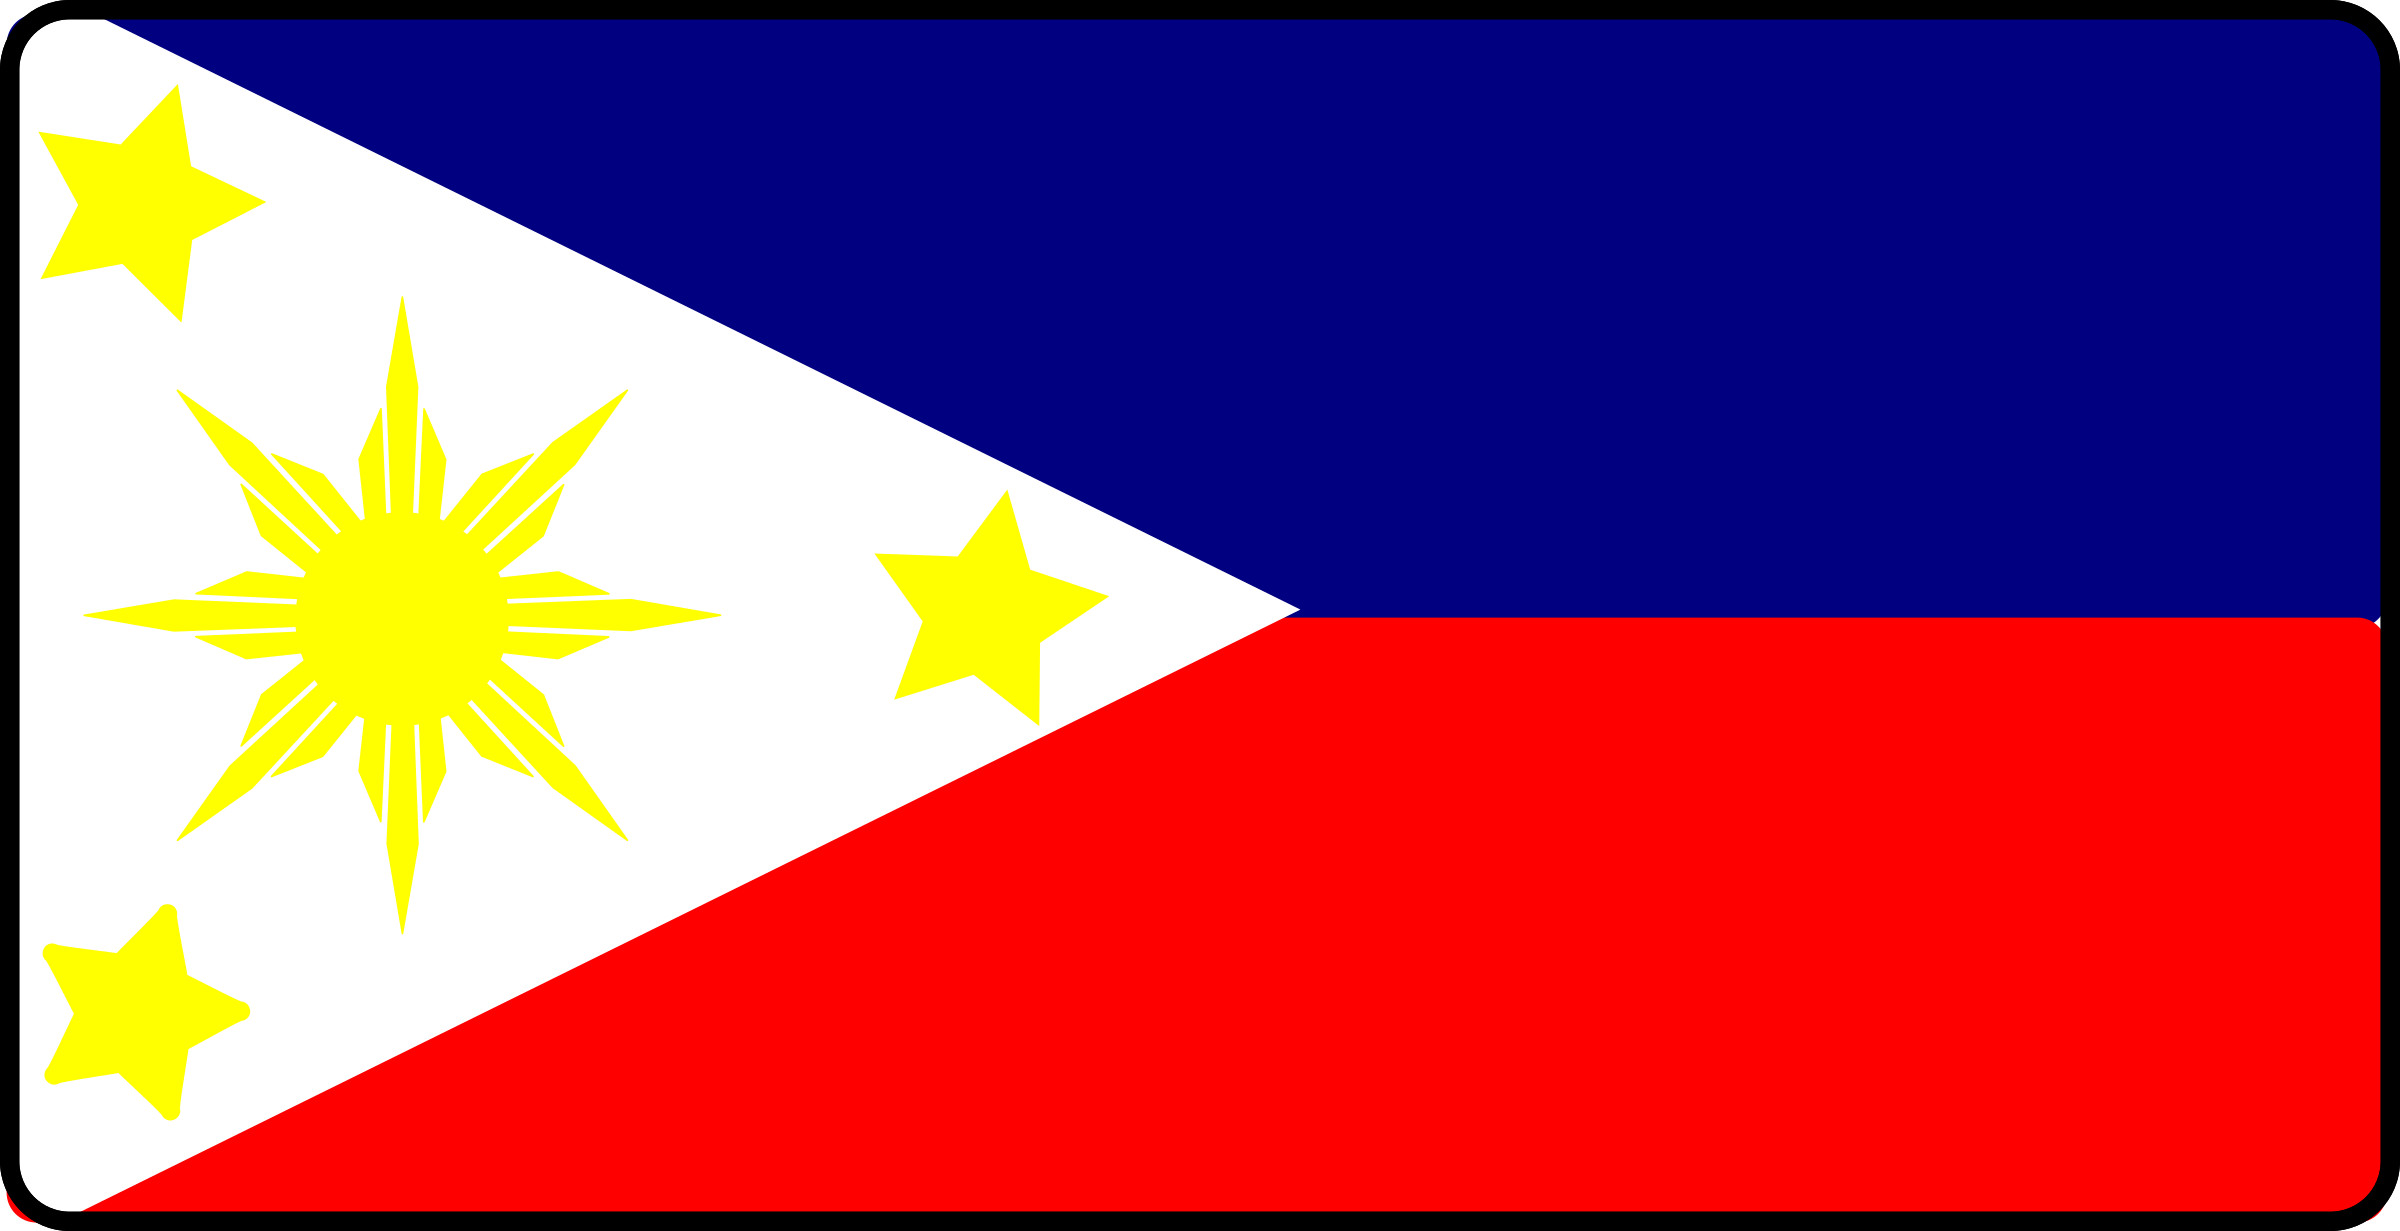 Philippines flag free material download free BIG IMAGE (PNG) …